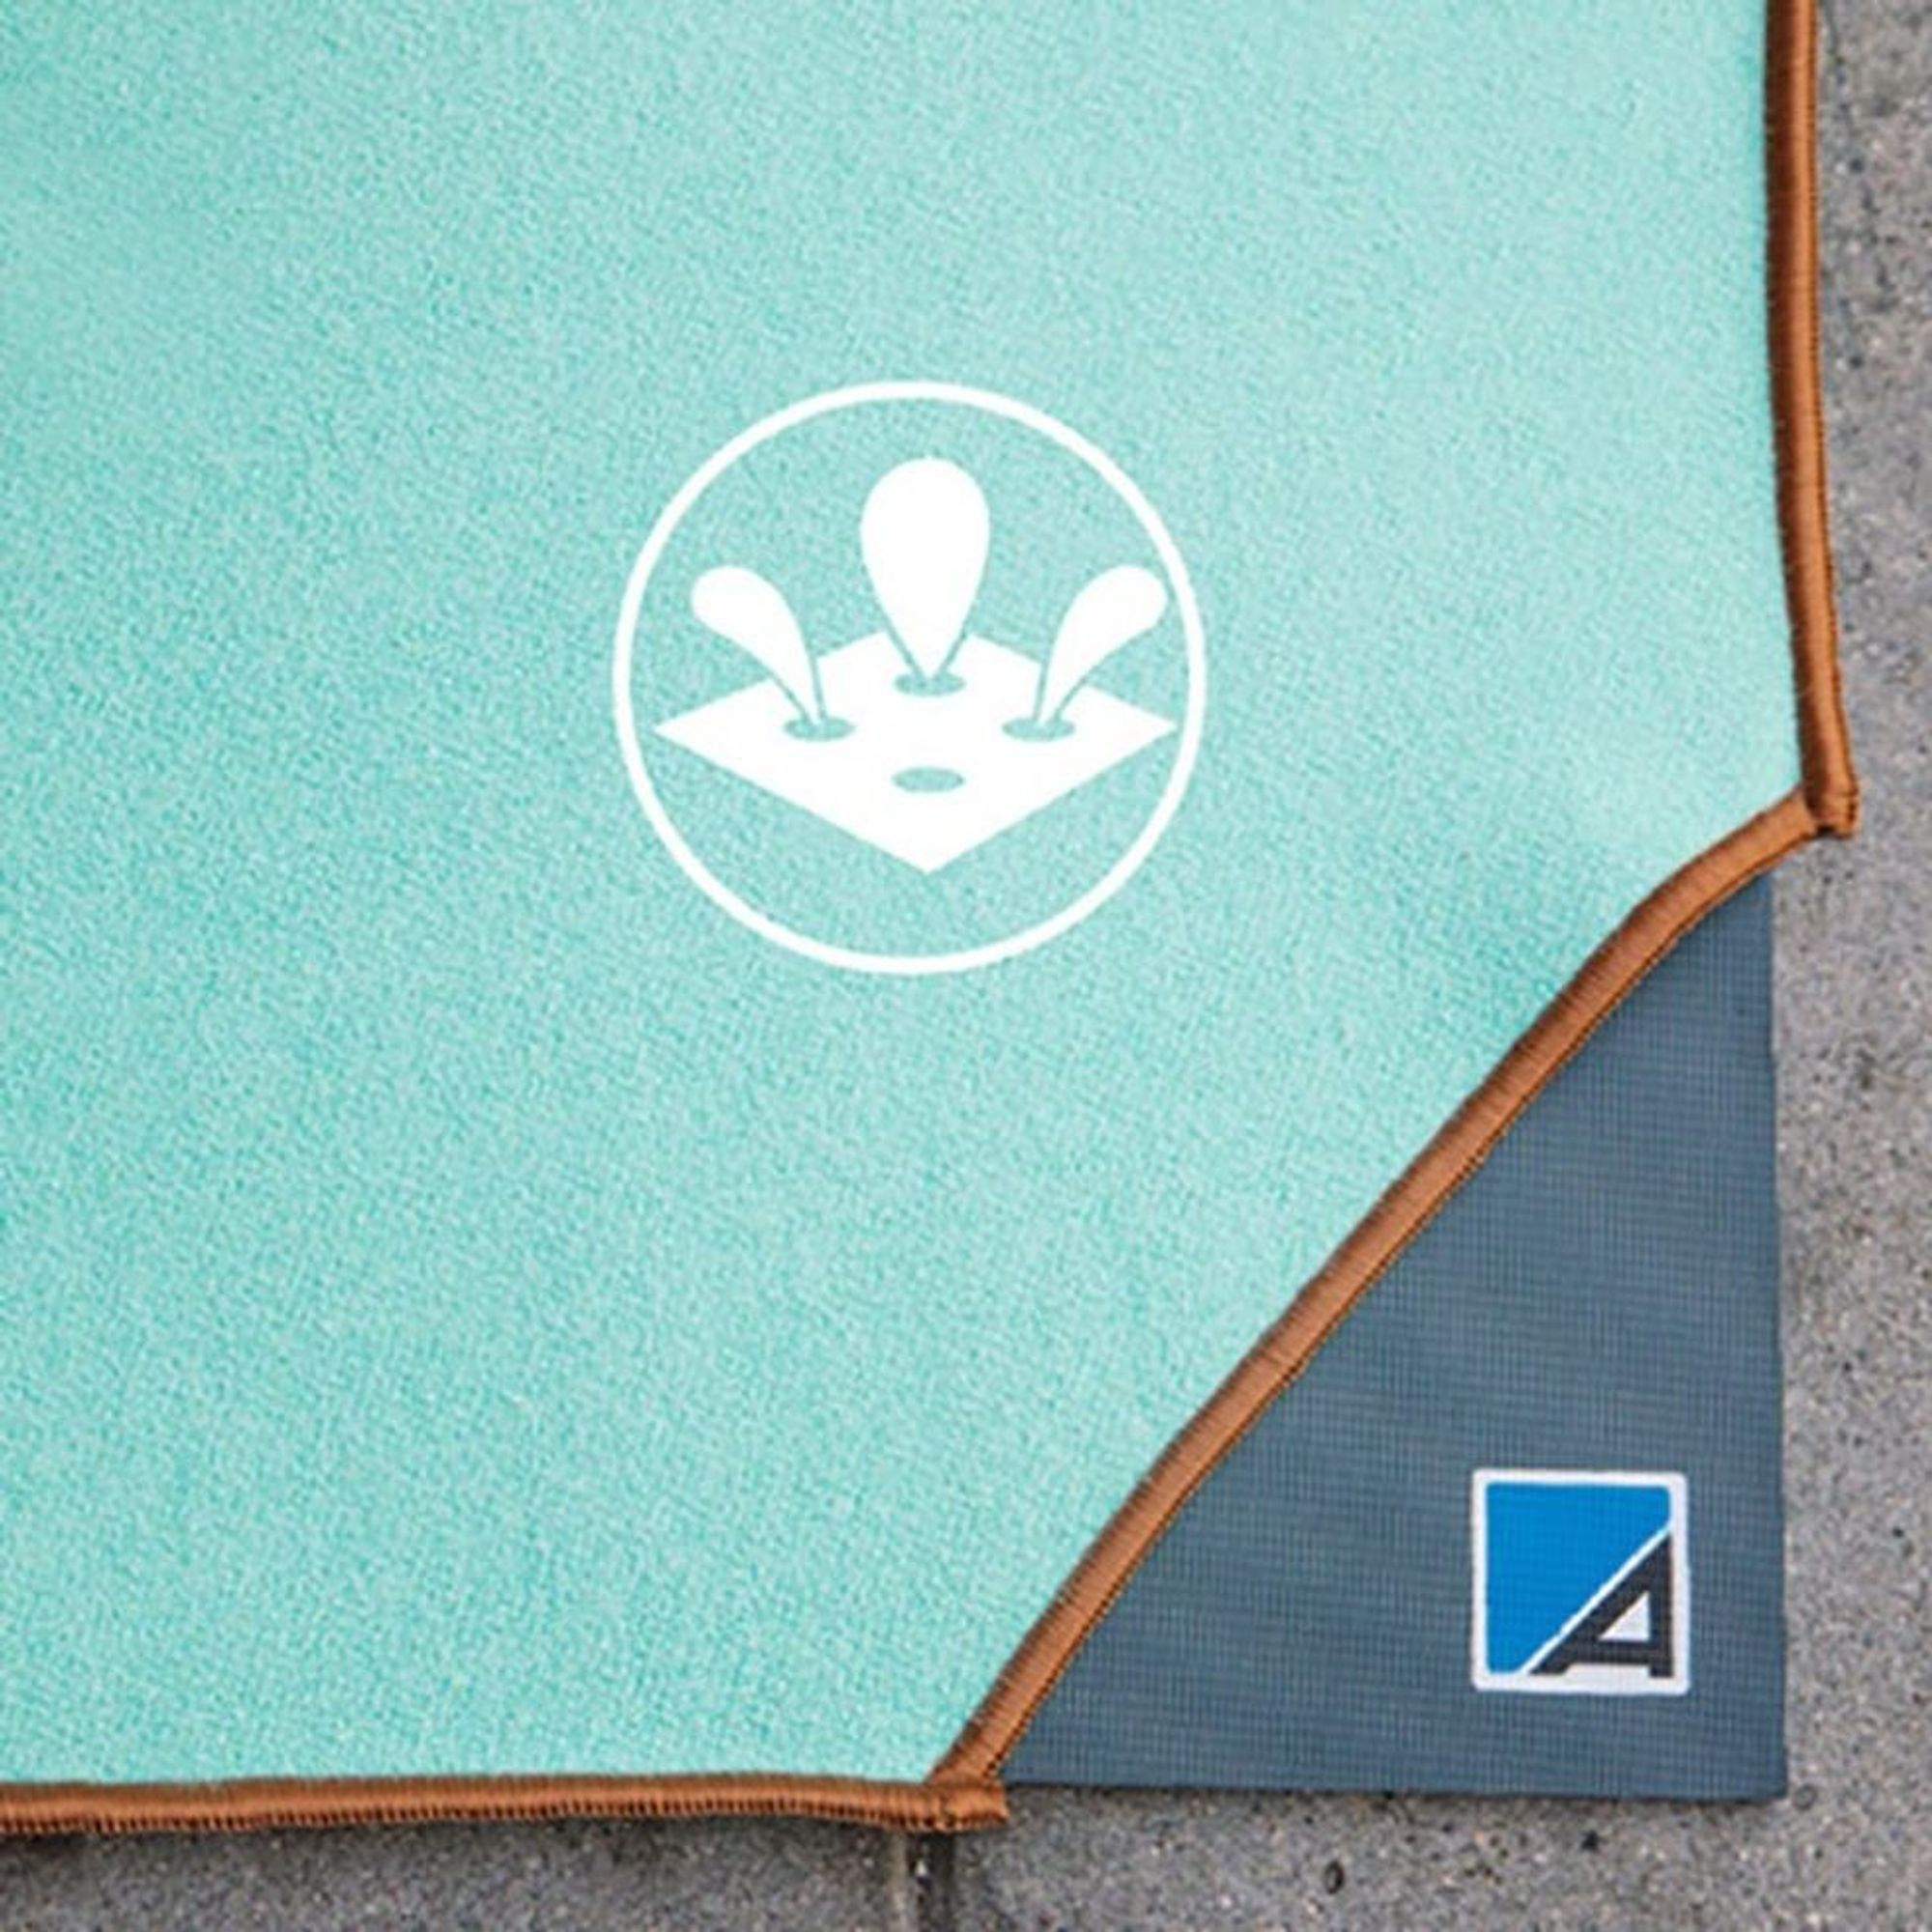 This Genius Towel Solves the Most Annoying Yoga Problem